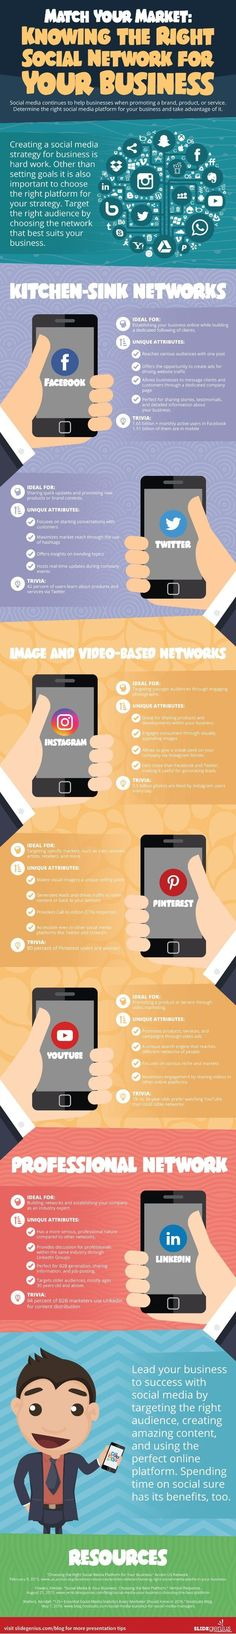 Which #SocialMedia Platforms Are Worth Your Time and Effort? #Infographic #Marketing